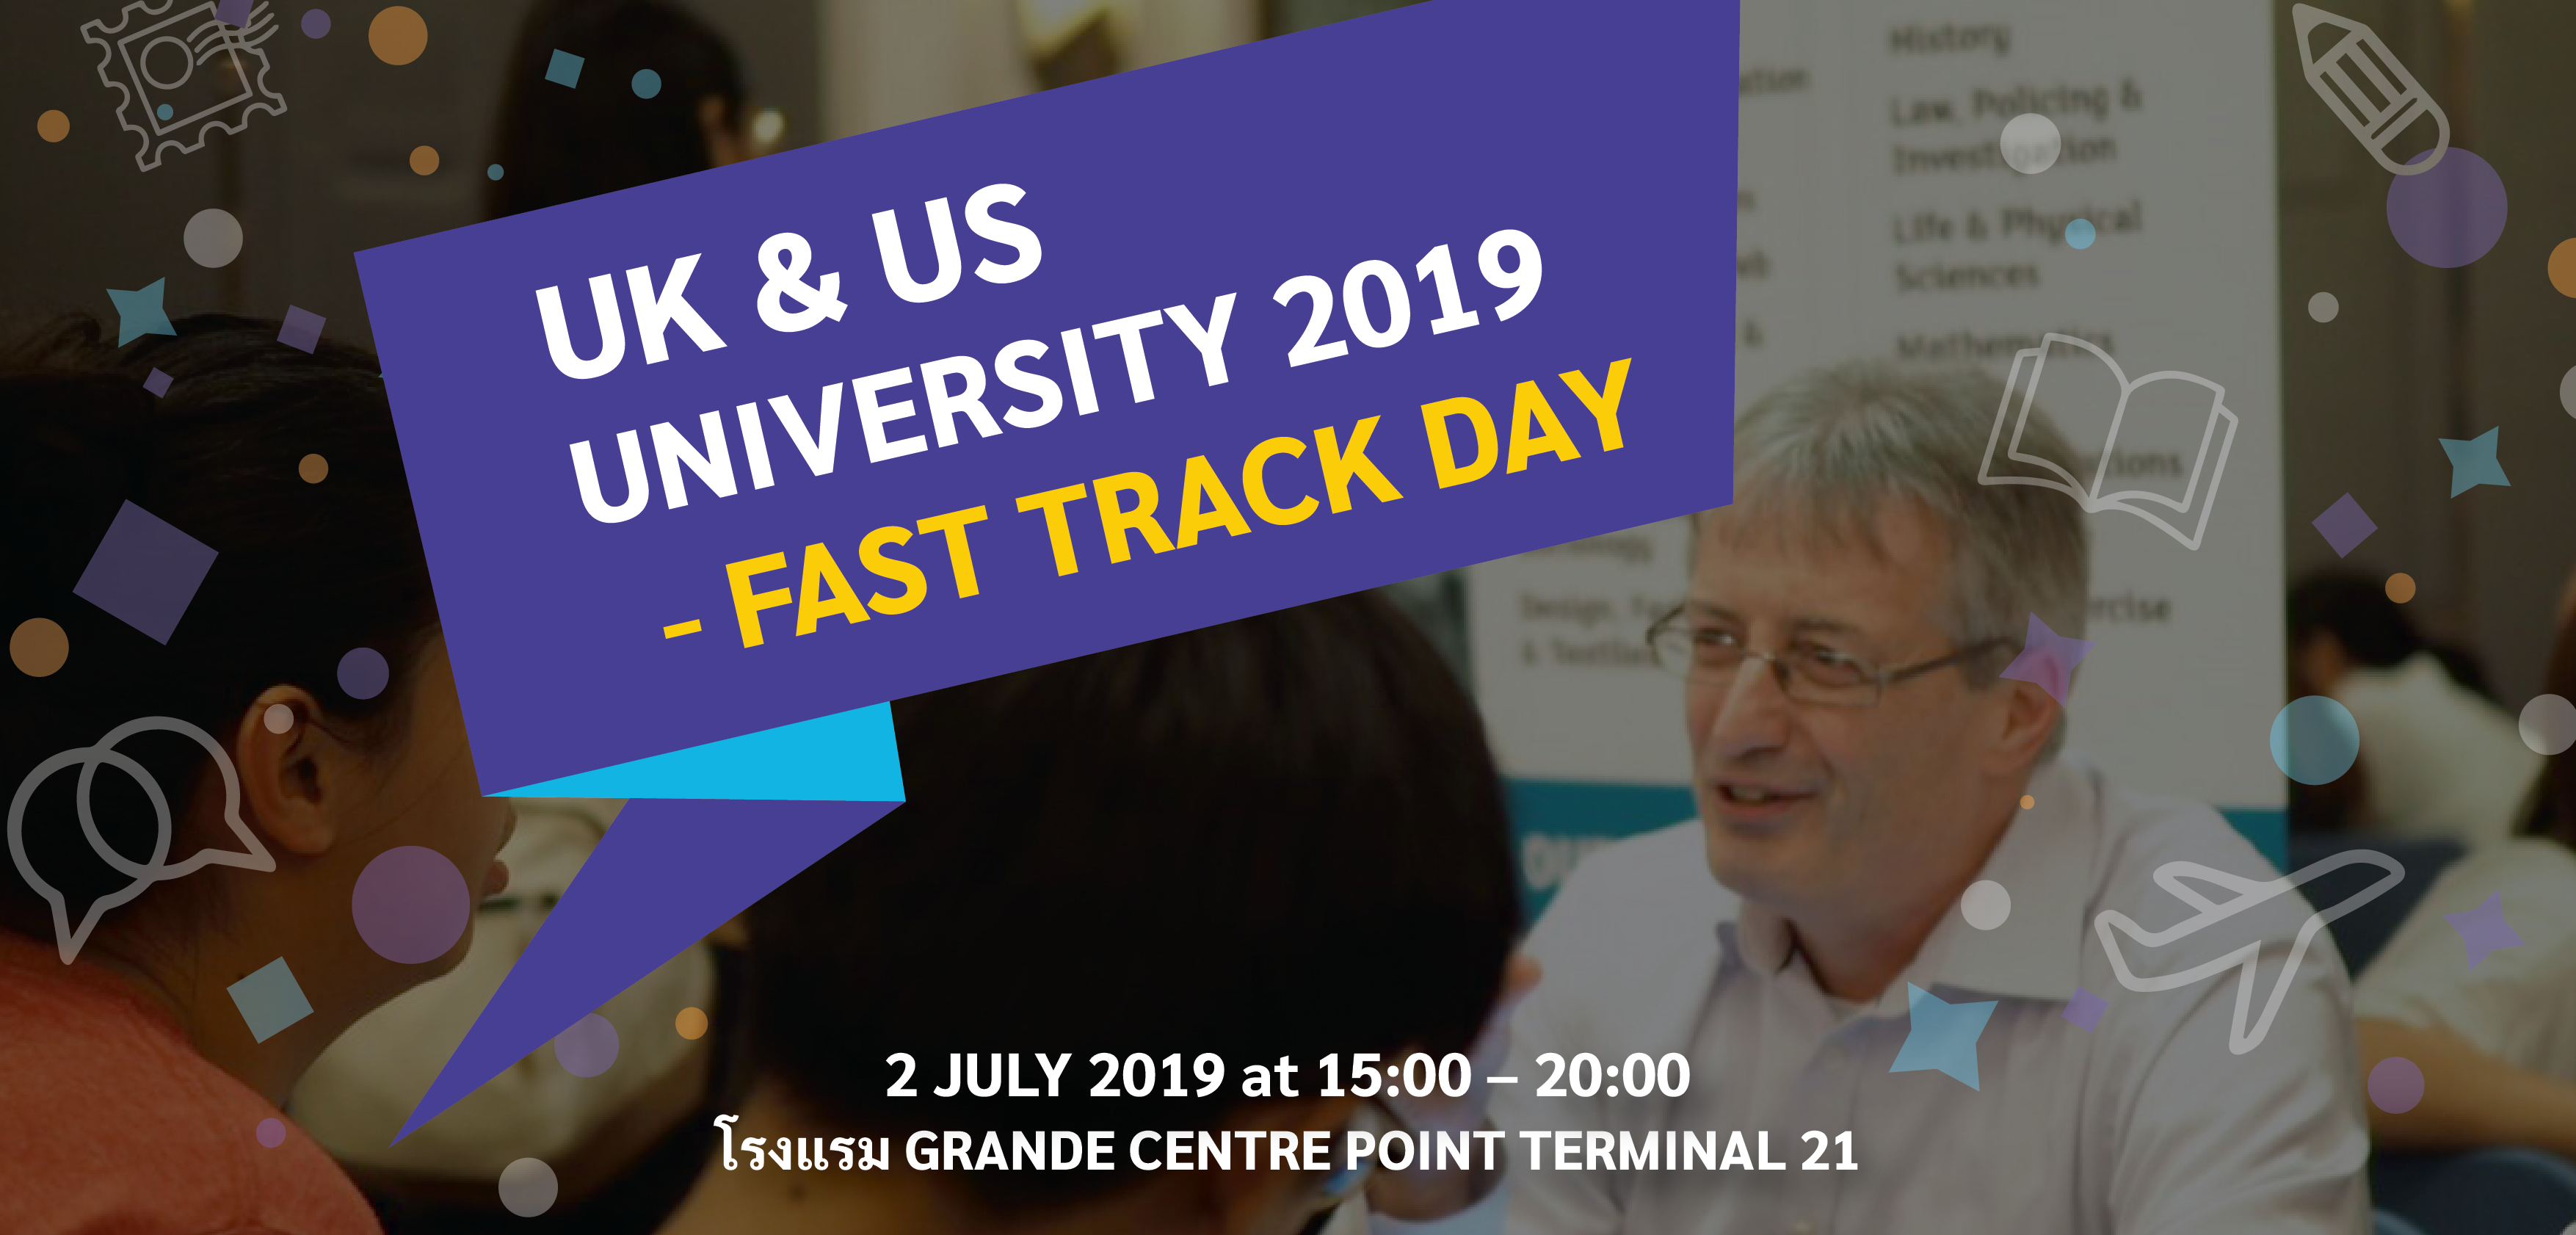 UK & US University 2019 – Fast Track Day